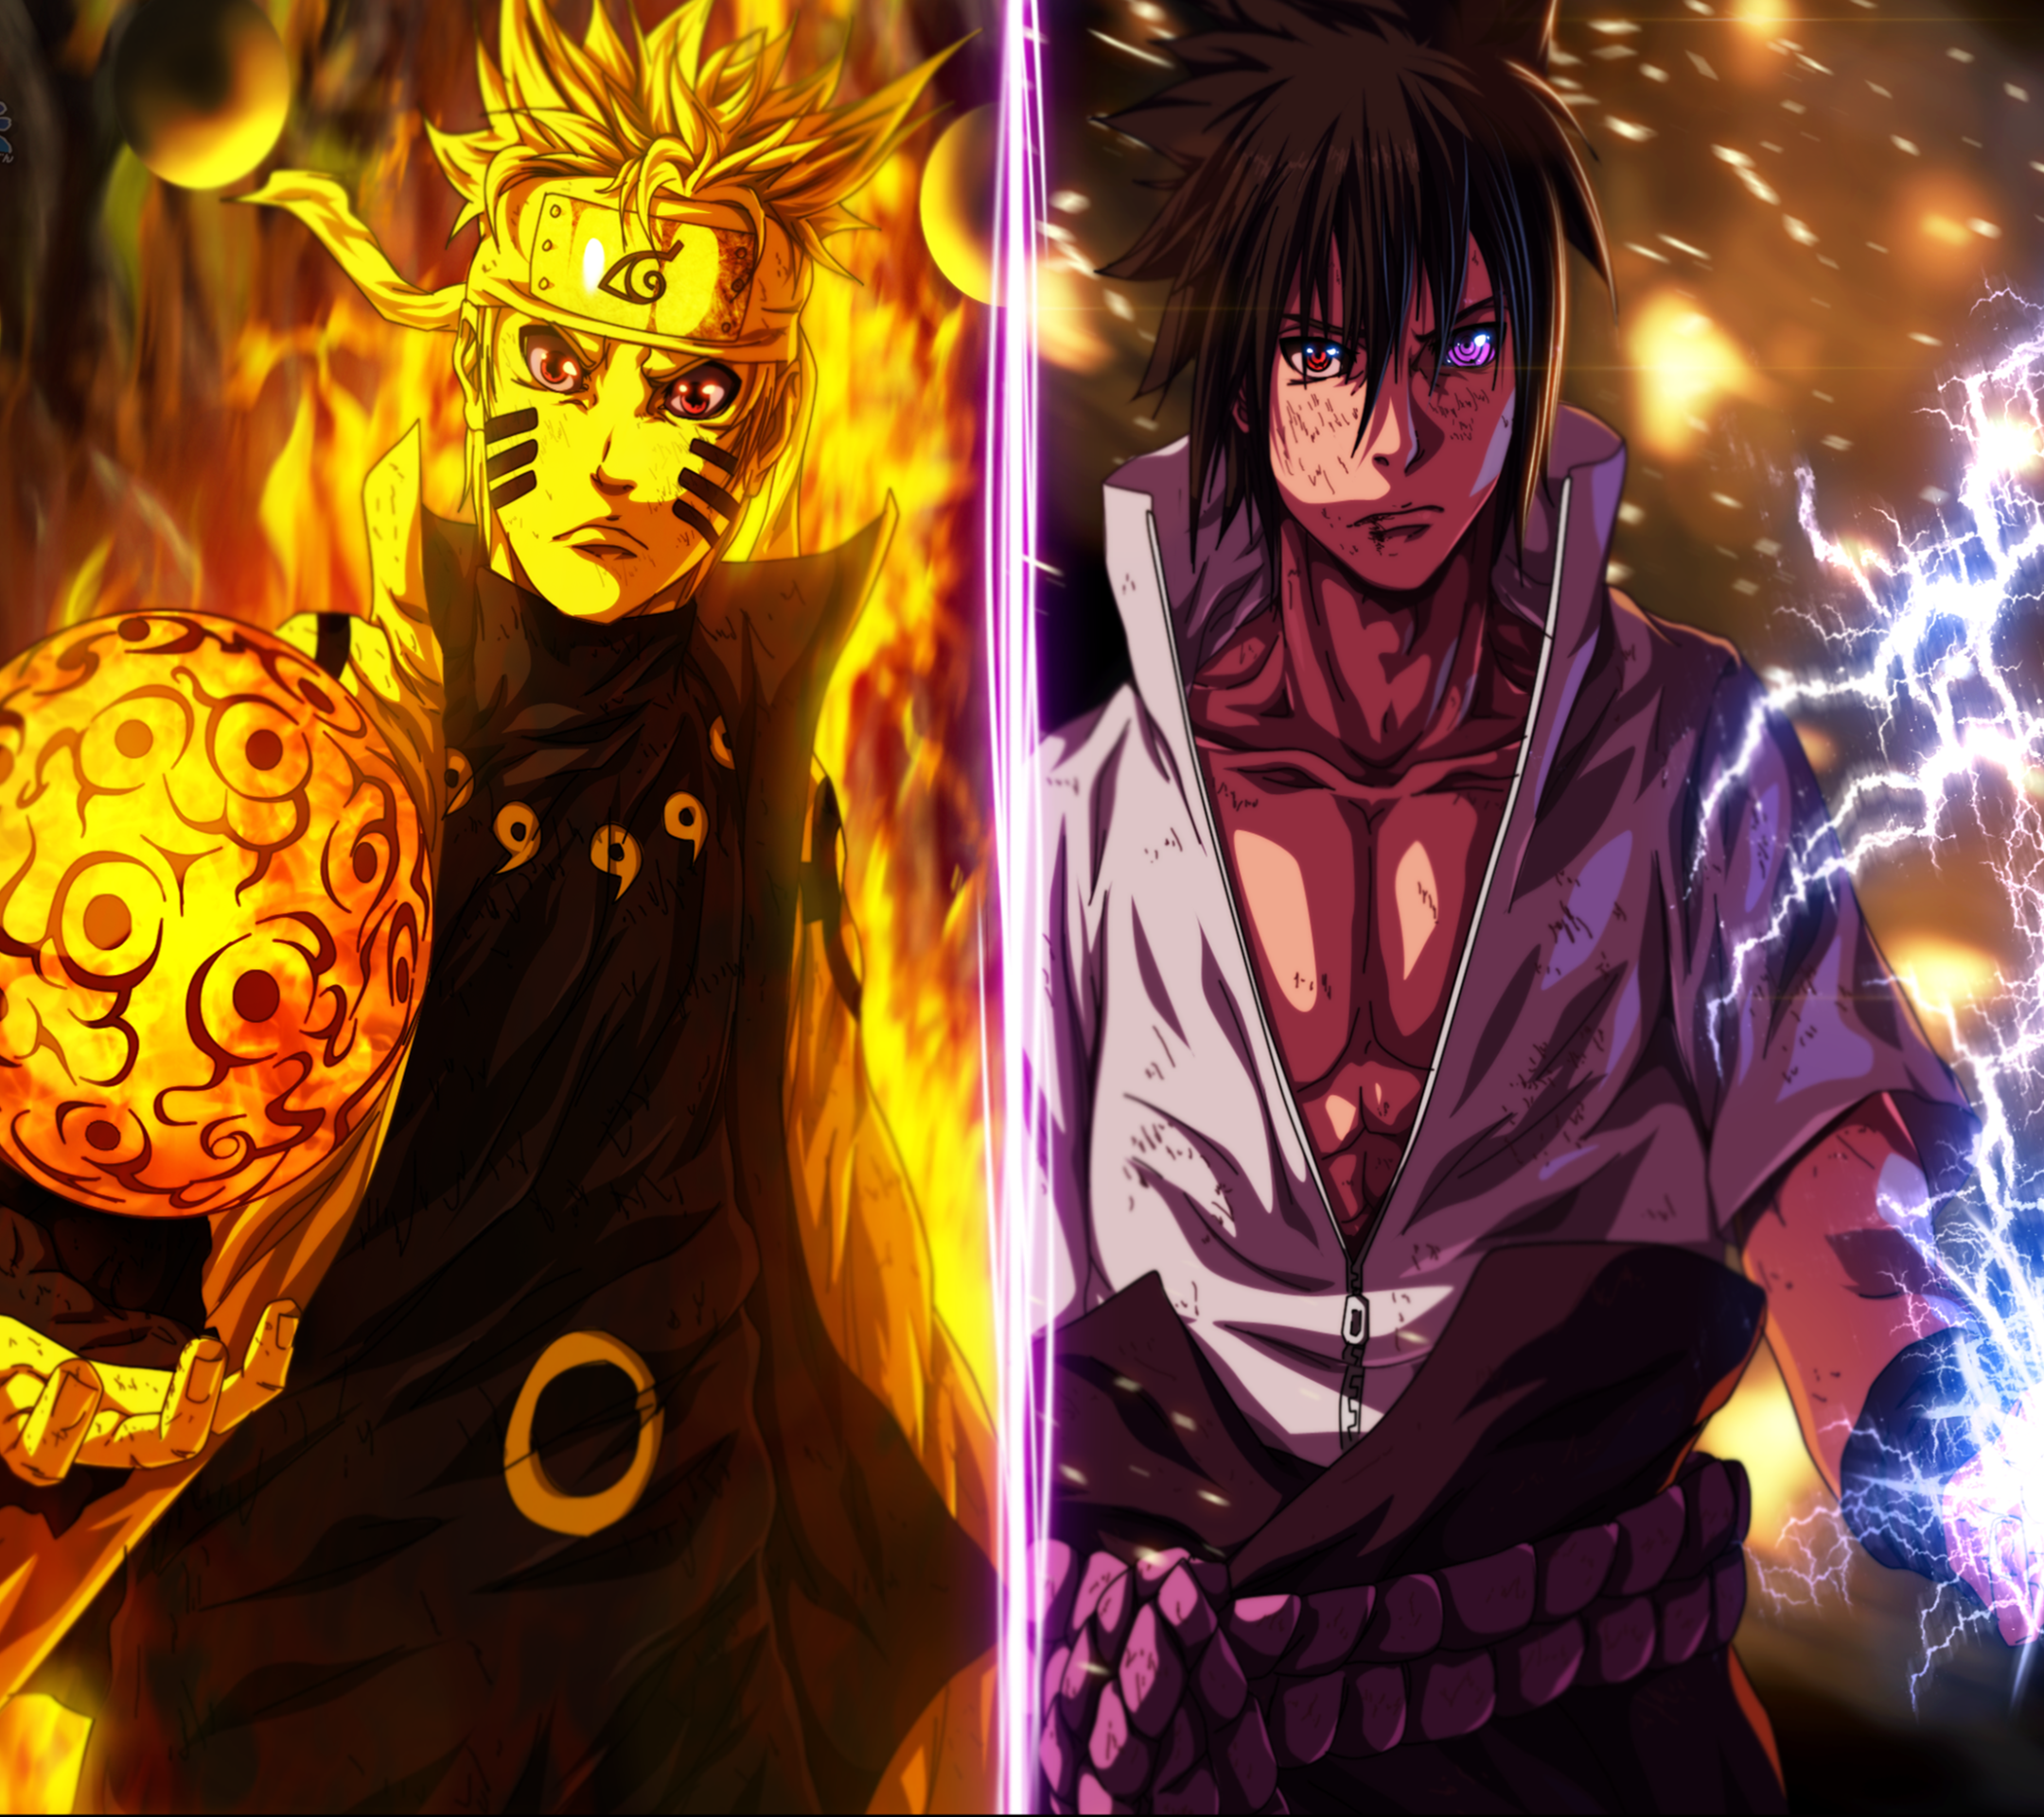 187 Naruto Motorola Moto G 1440x1280 Wallpapers Mobile Abyss